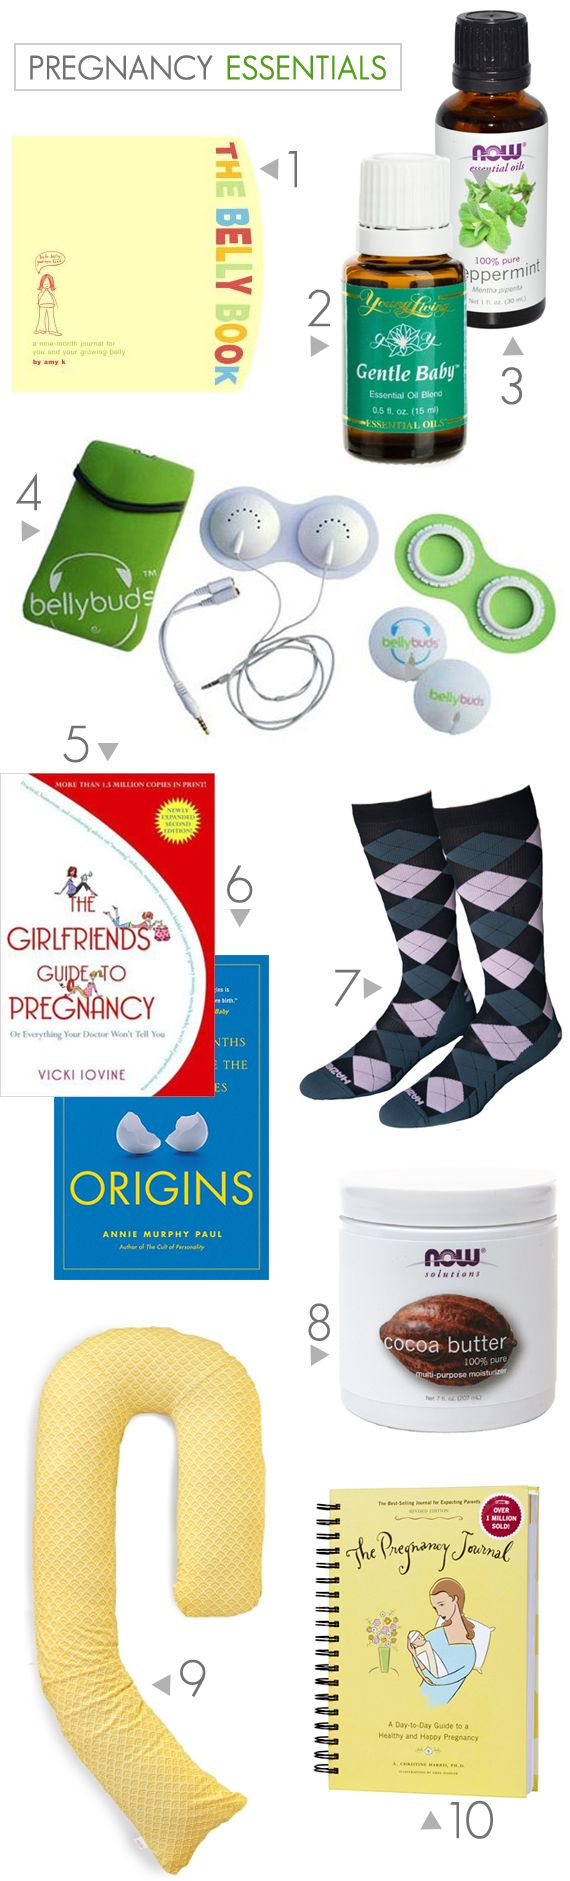 10 Pregnancy Essentials // Bubby and Bean---this would be a great baby shower gift